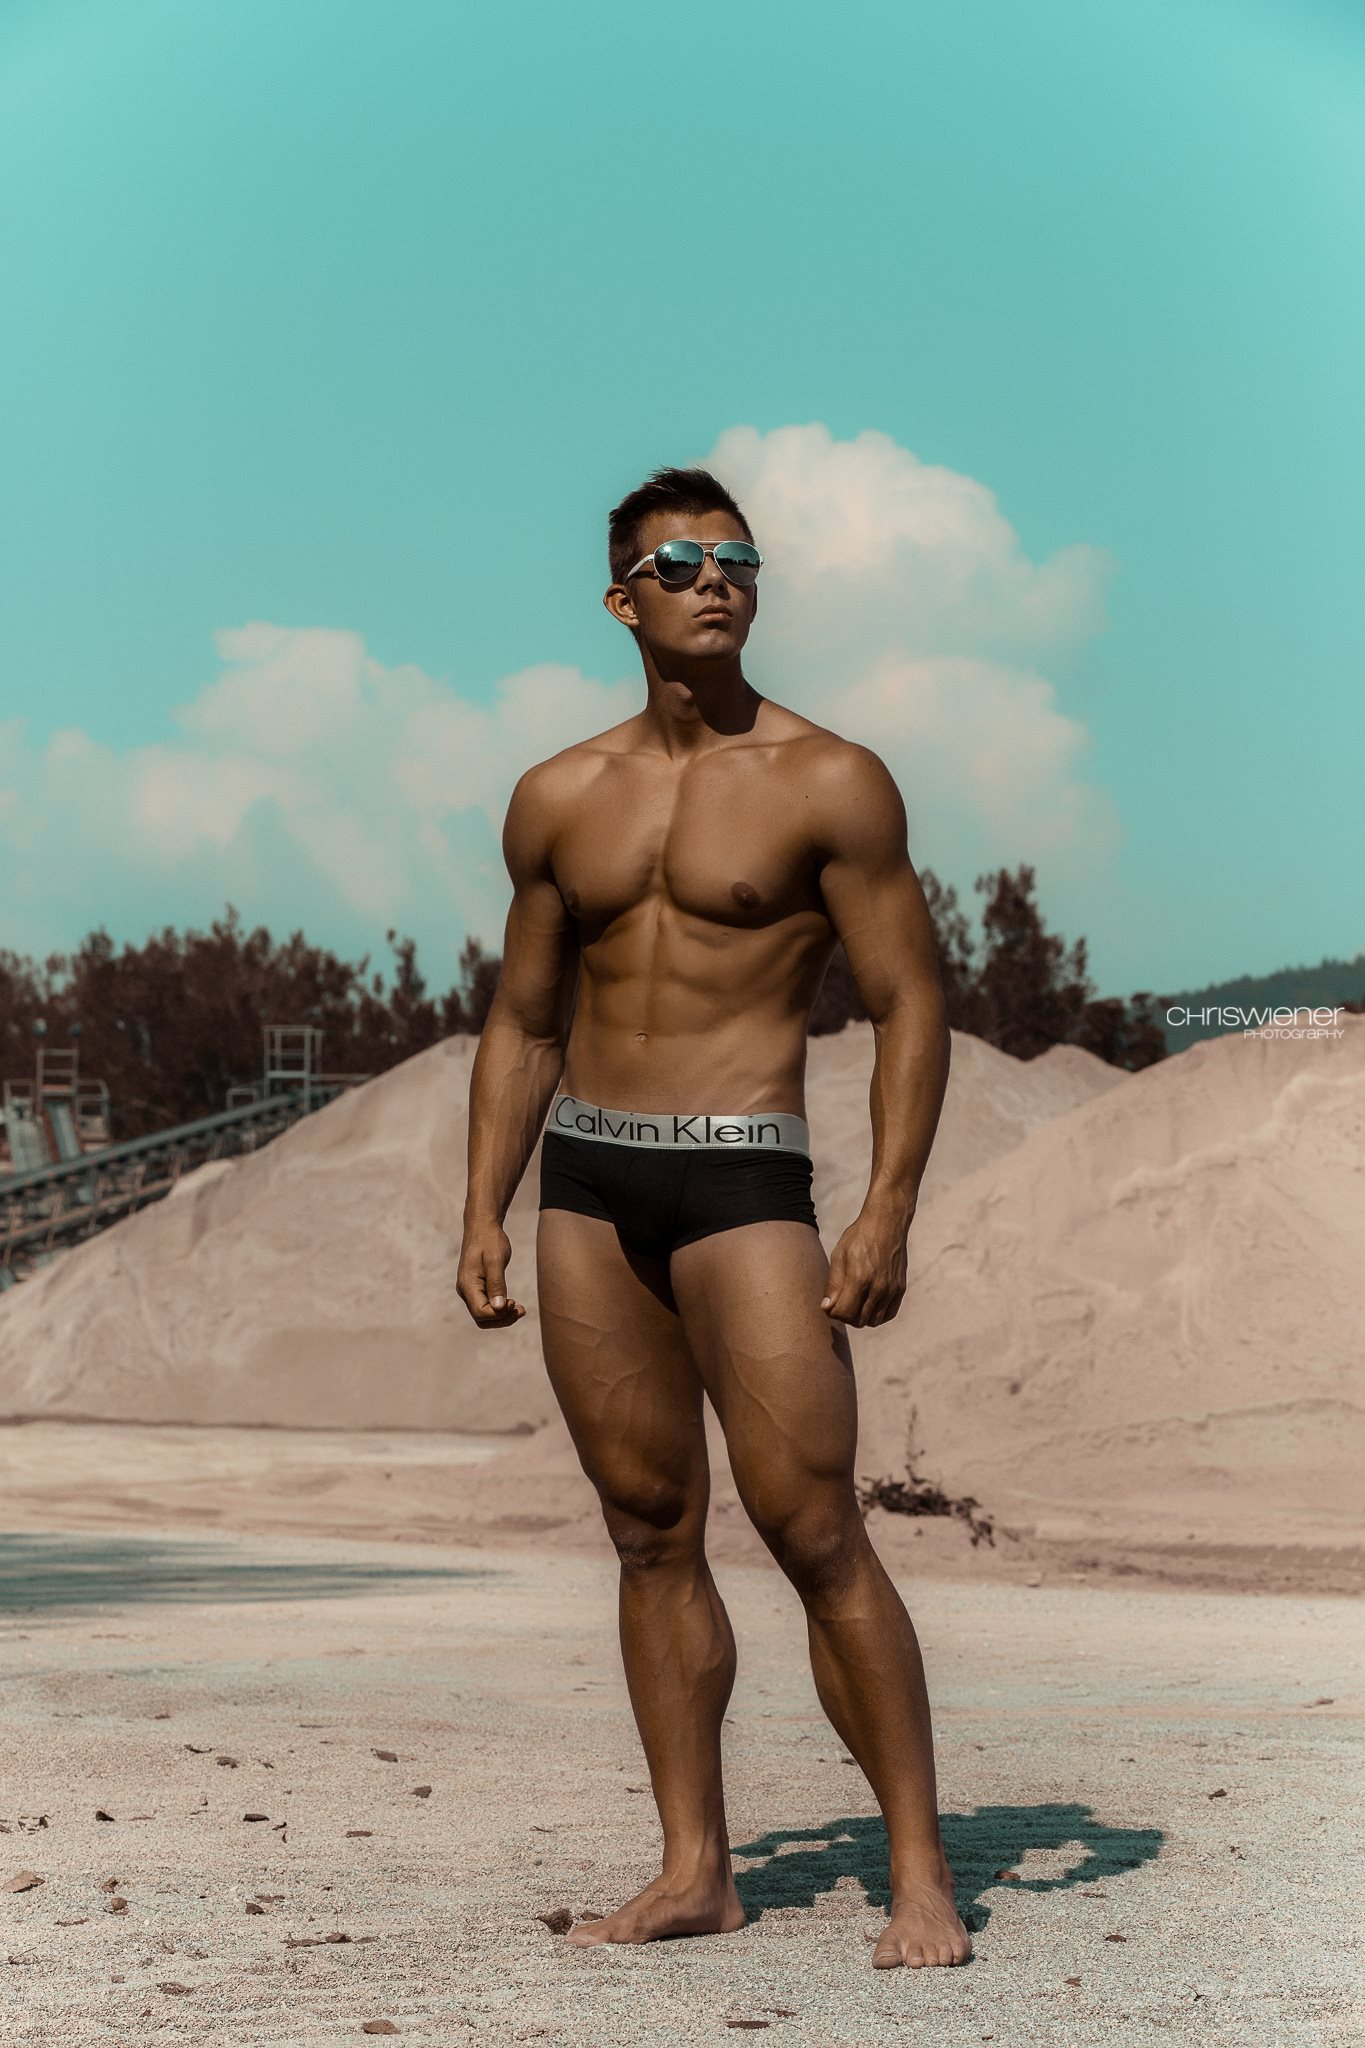 Jakub Smucr by Chris Wiener